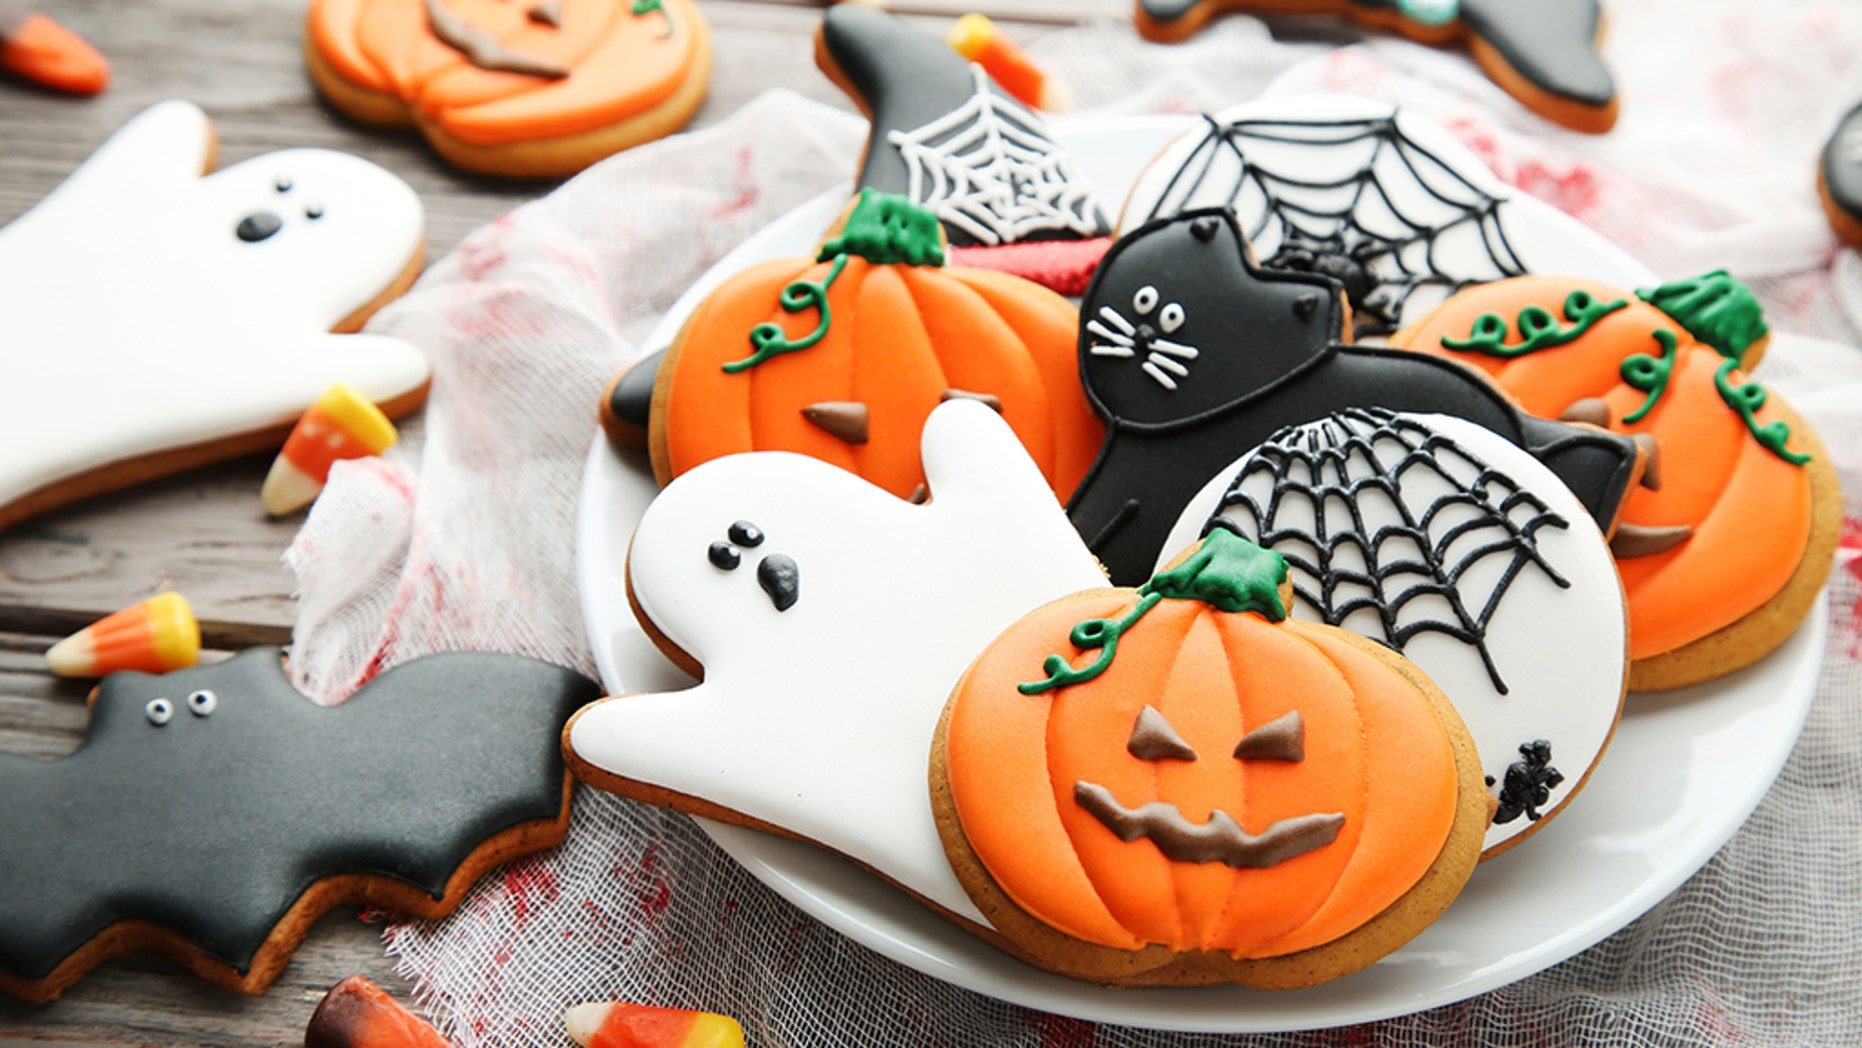 Check out these 5 easy Halloween treats to make.